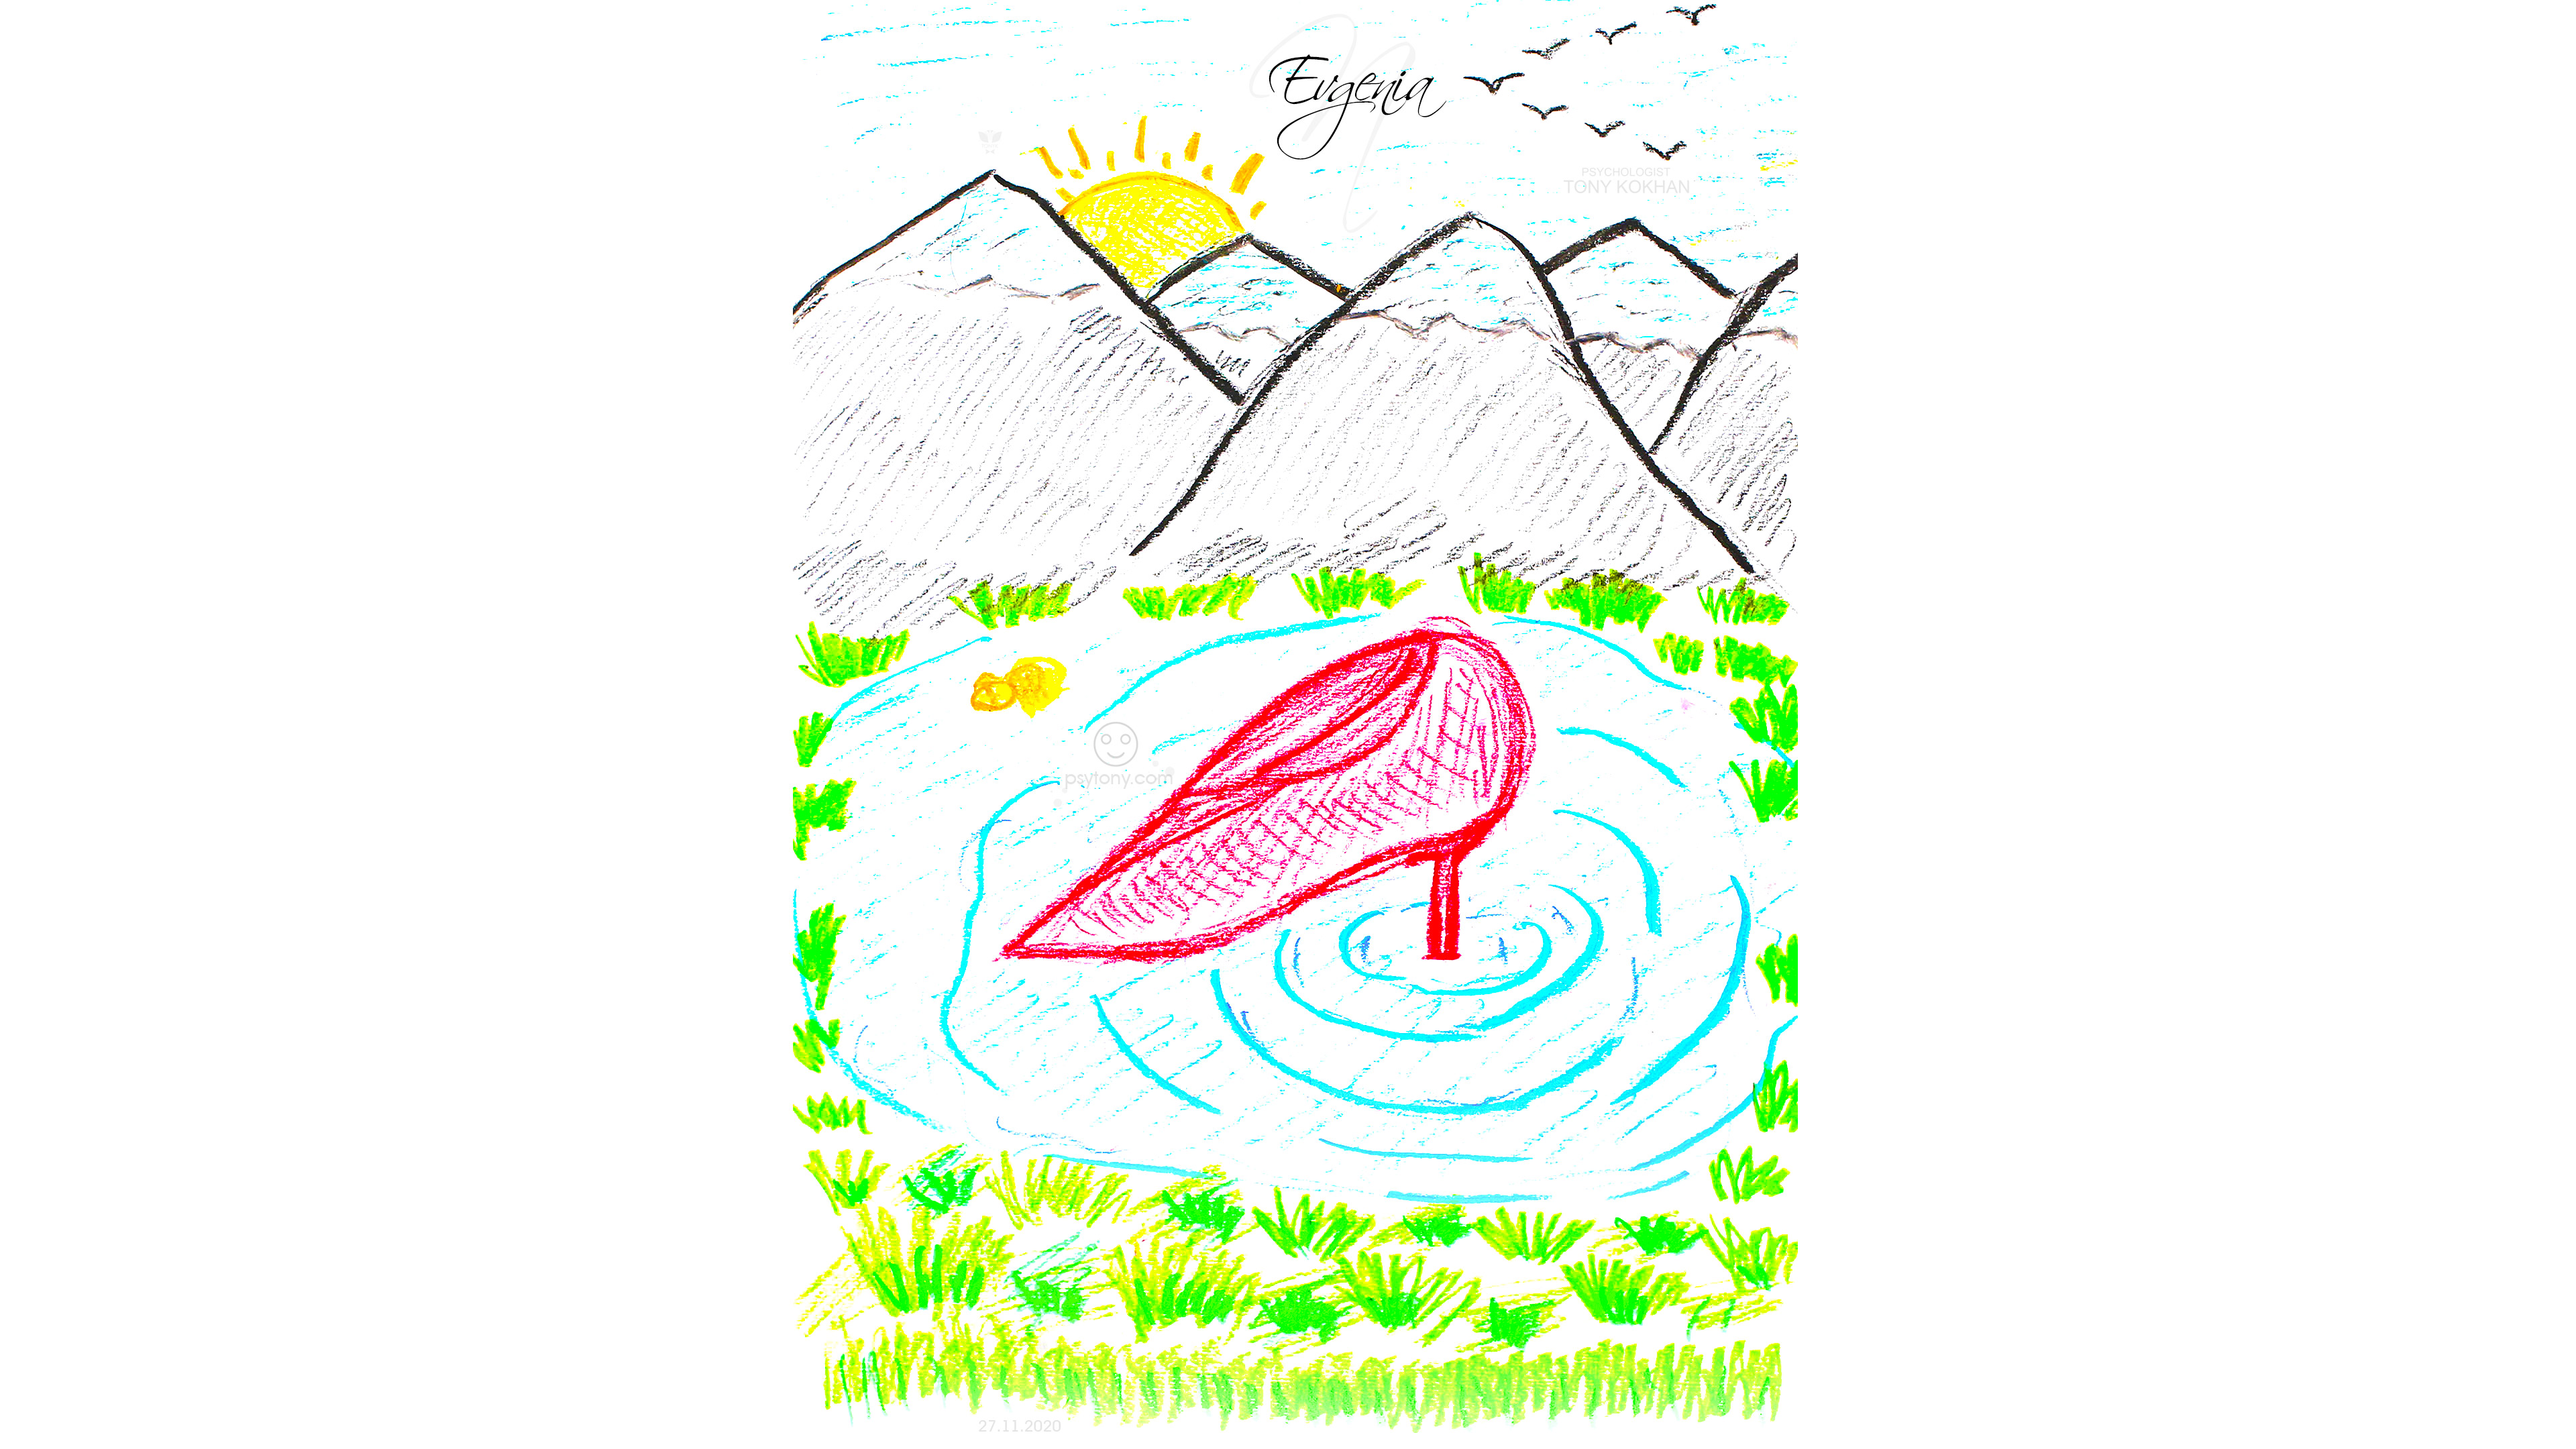 Evgenia-Soul-Girl-Sun-Beyond-The-Mountains-Birds-Gold-Fish-Womens-Shoes-Water-Grass-Pastel-Art-2021-Multicolors-4K-Wallpapers-by-Psychologist-Tony-Kokhan-www.psytony.com-image